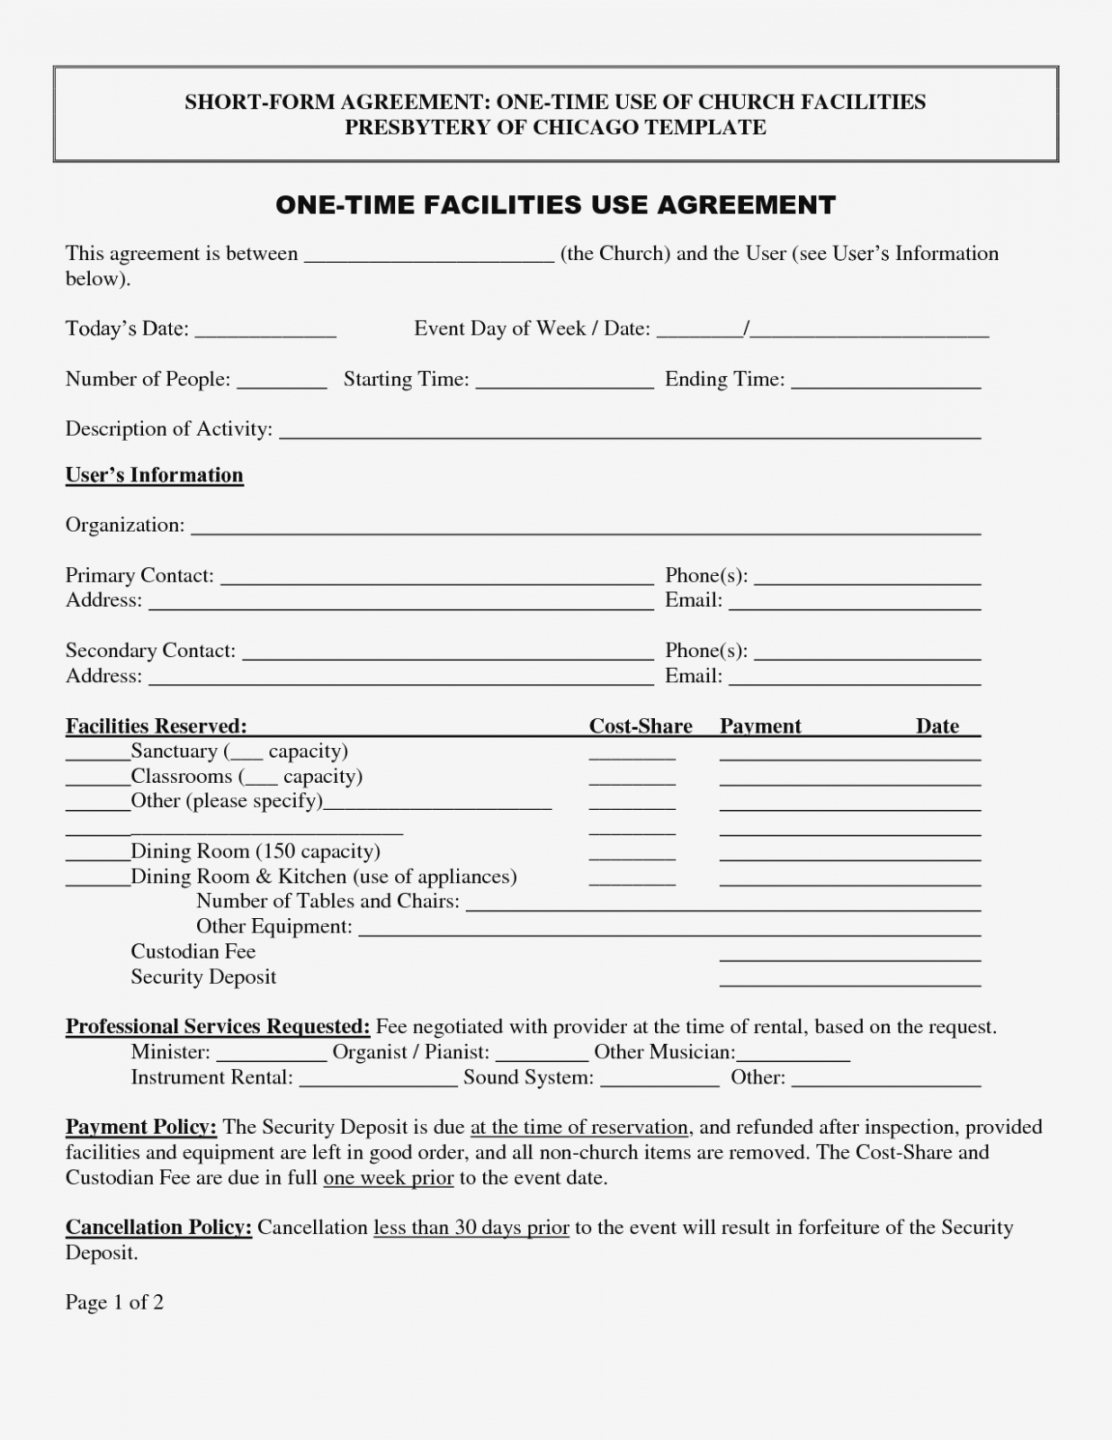 Contract Rental Agreement Template Printable Best Photos Of Agreement Form Template Blank Contract